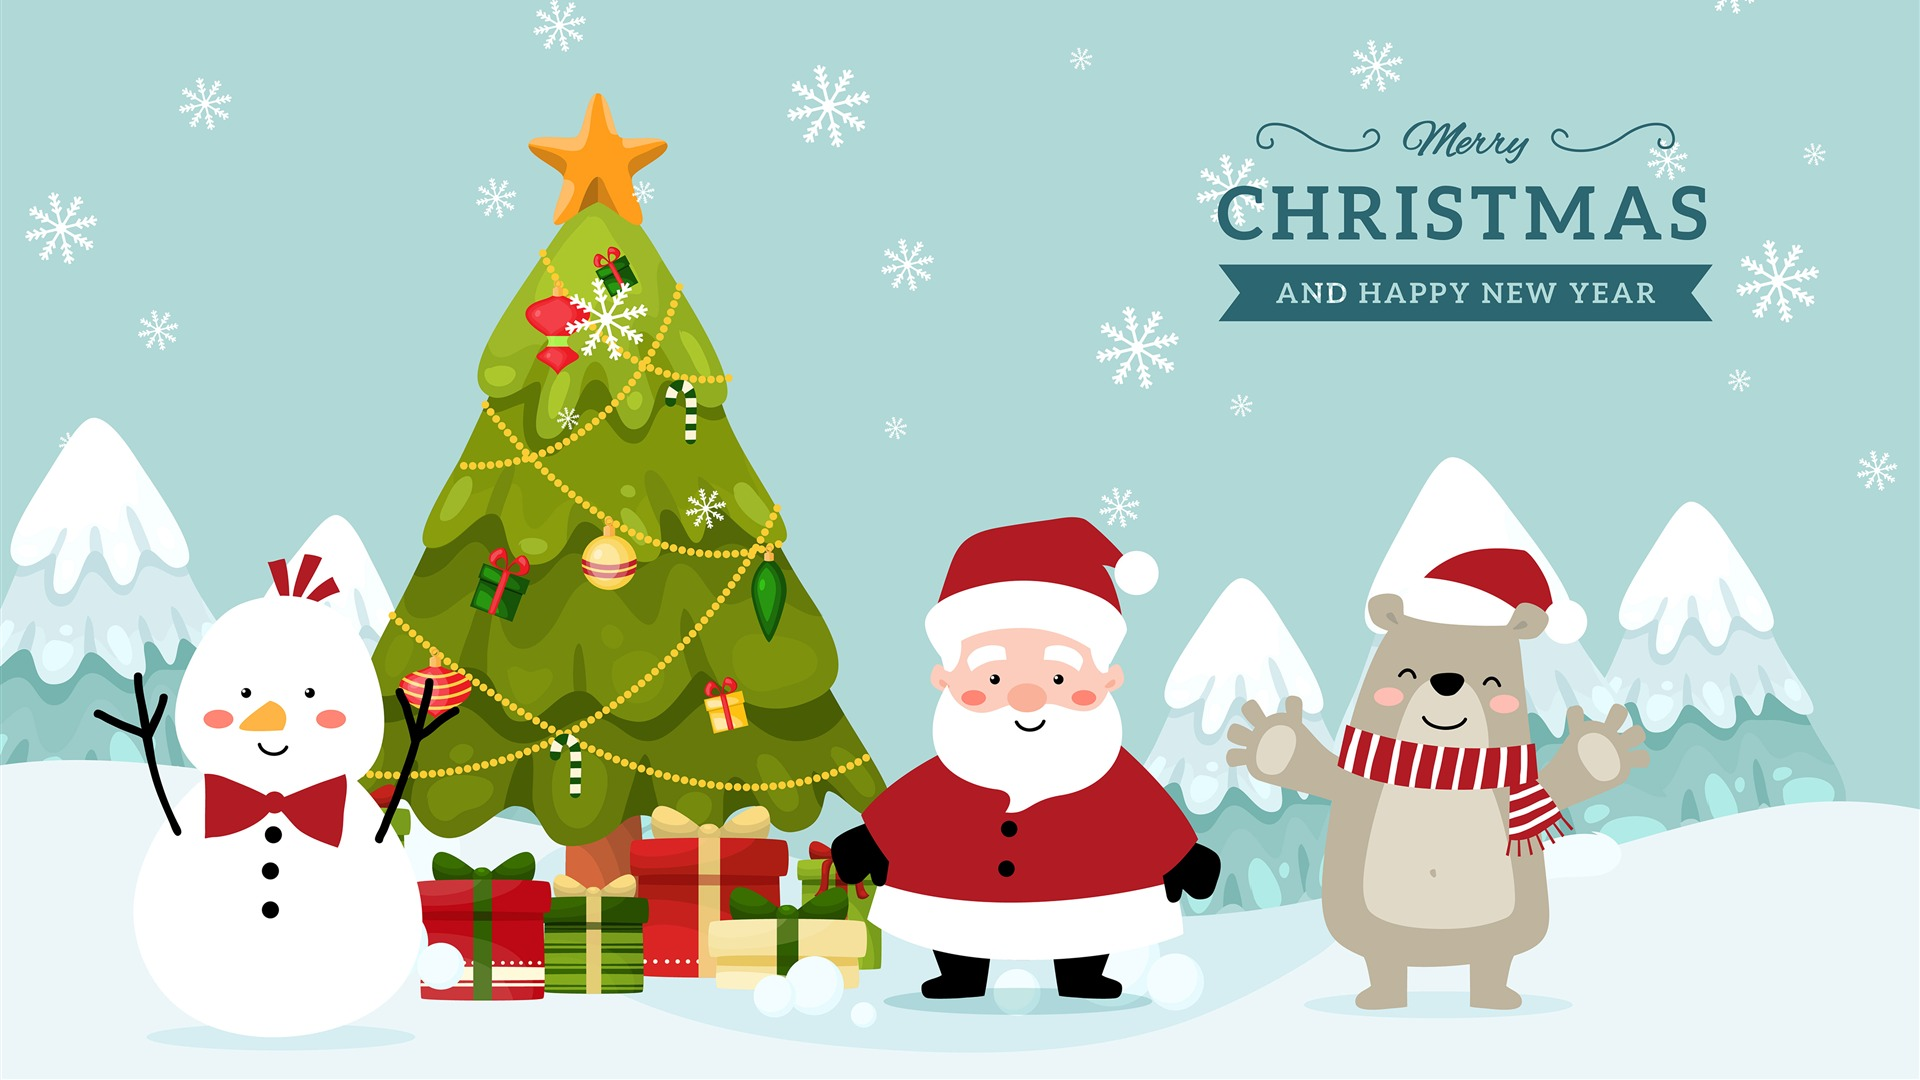 Christmas Tree Santa Claus Snowman Bear Wallpaper 1920x1080